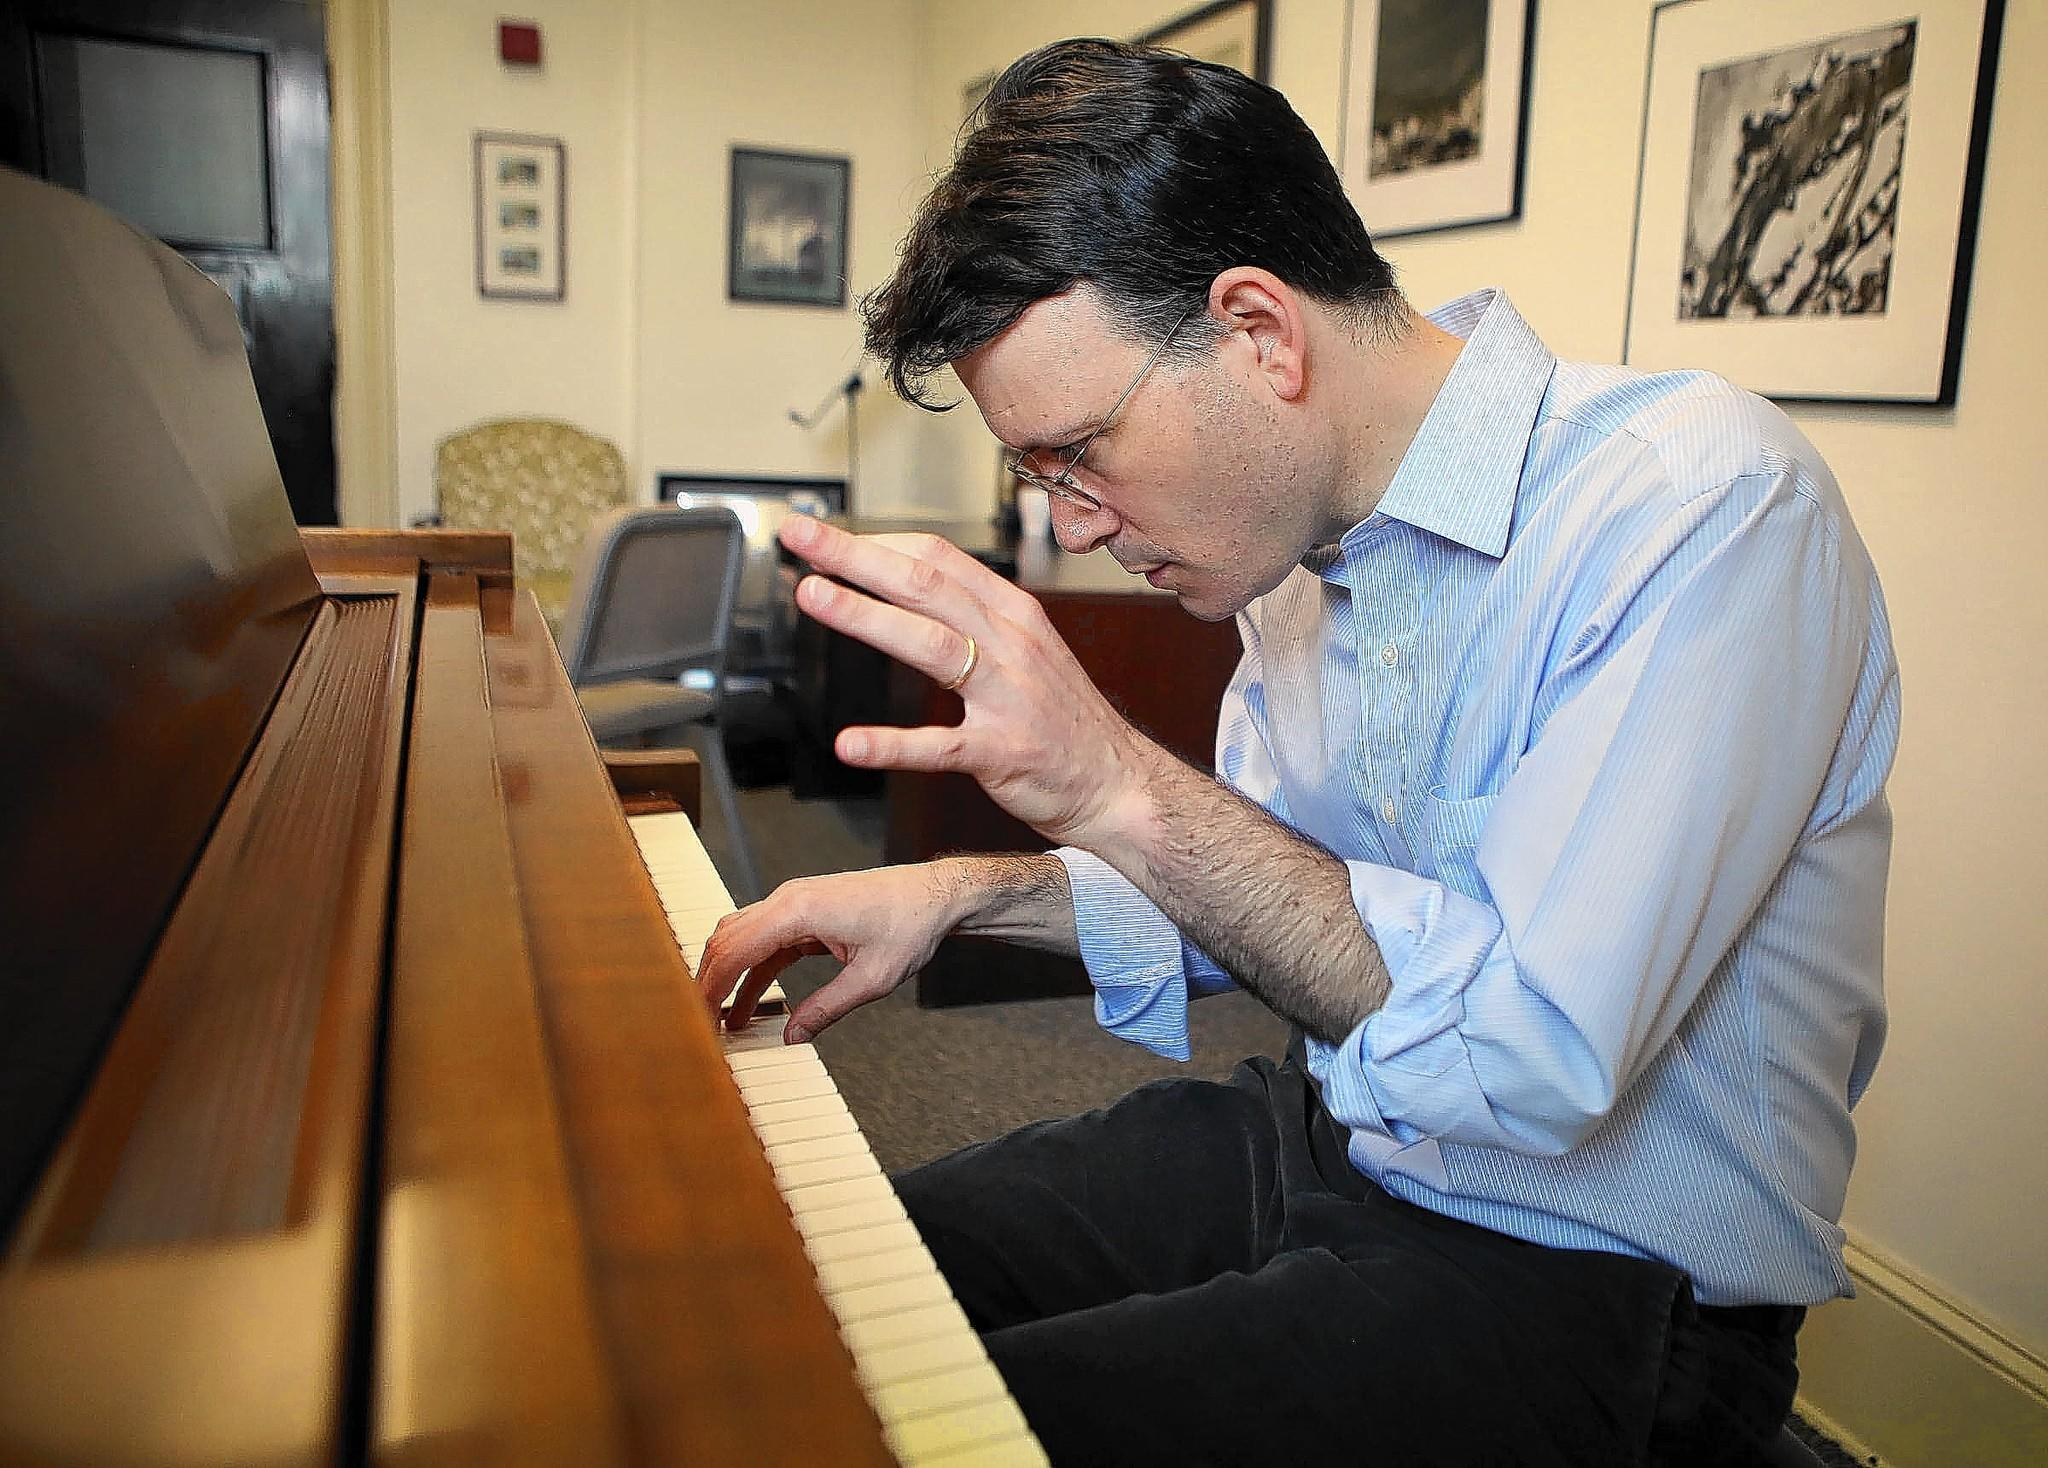 Composer and teacher Michael Hersch plays a selection from the opening song of his opera in his studio at the Peabody Institute.